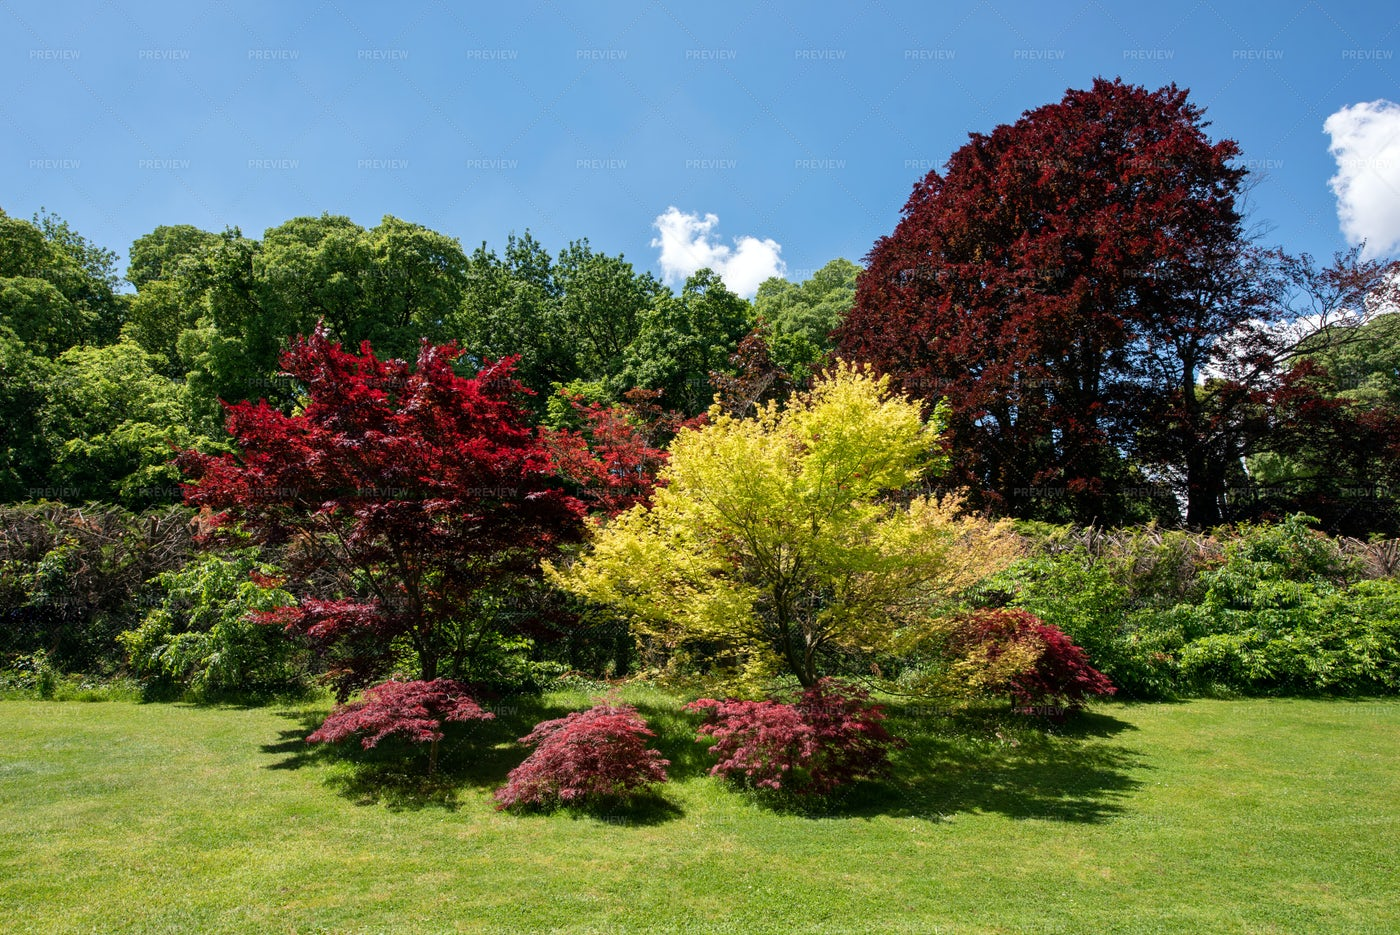 Red And Golden Japanese Maples: Stock Photos